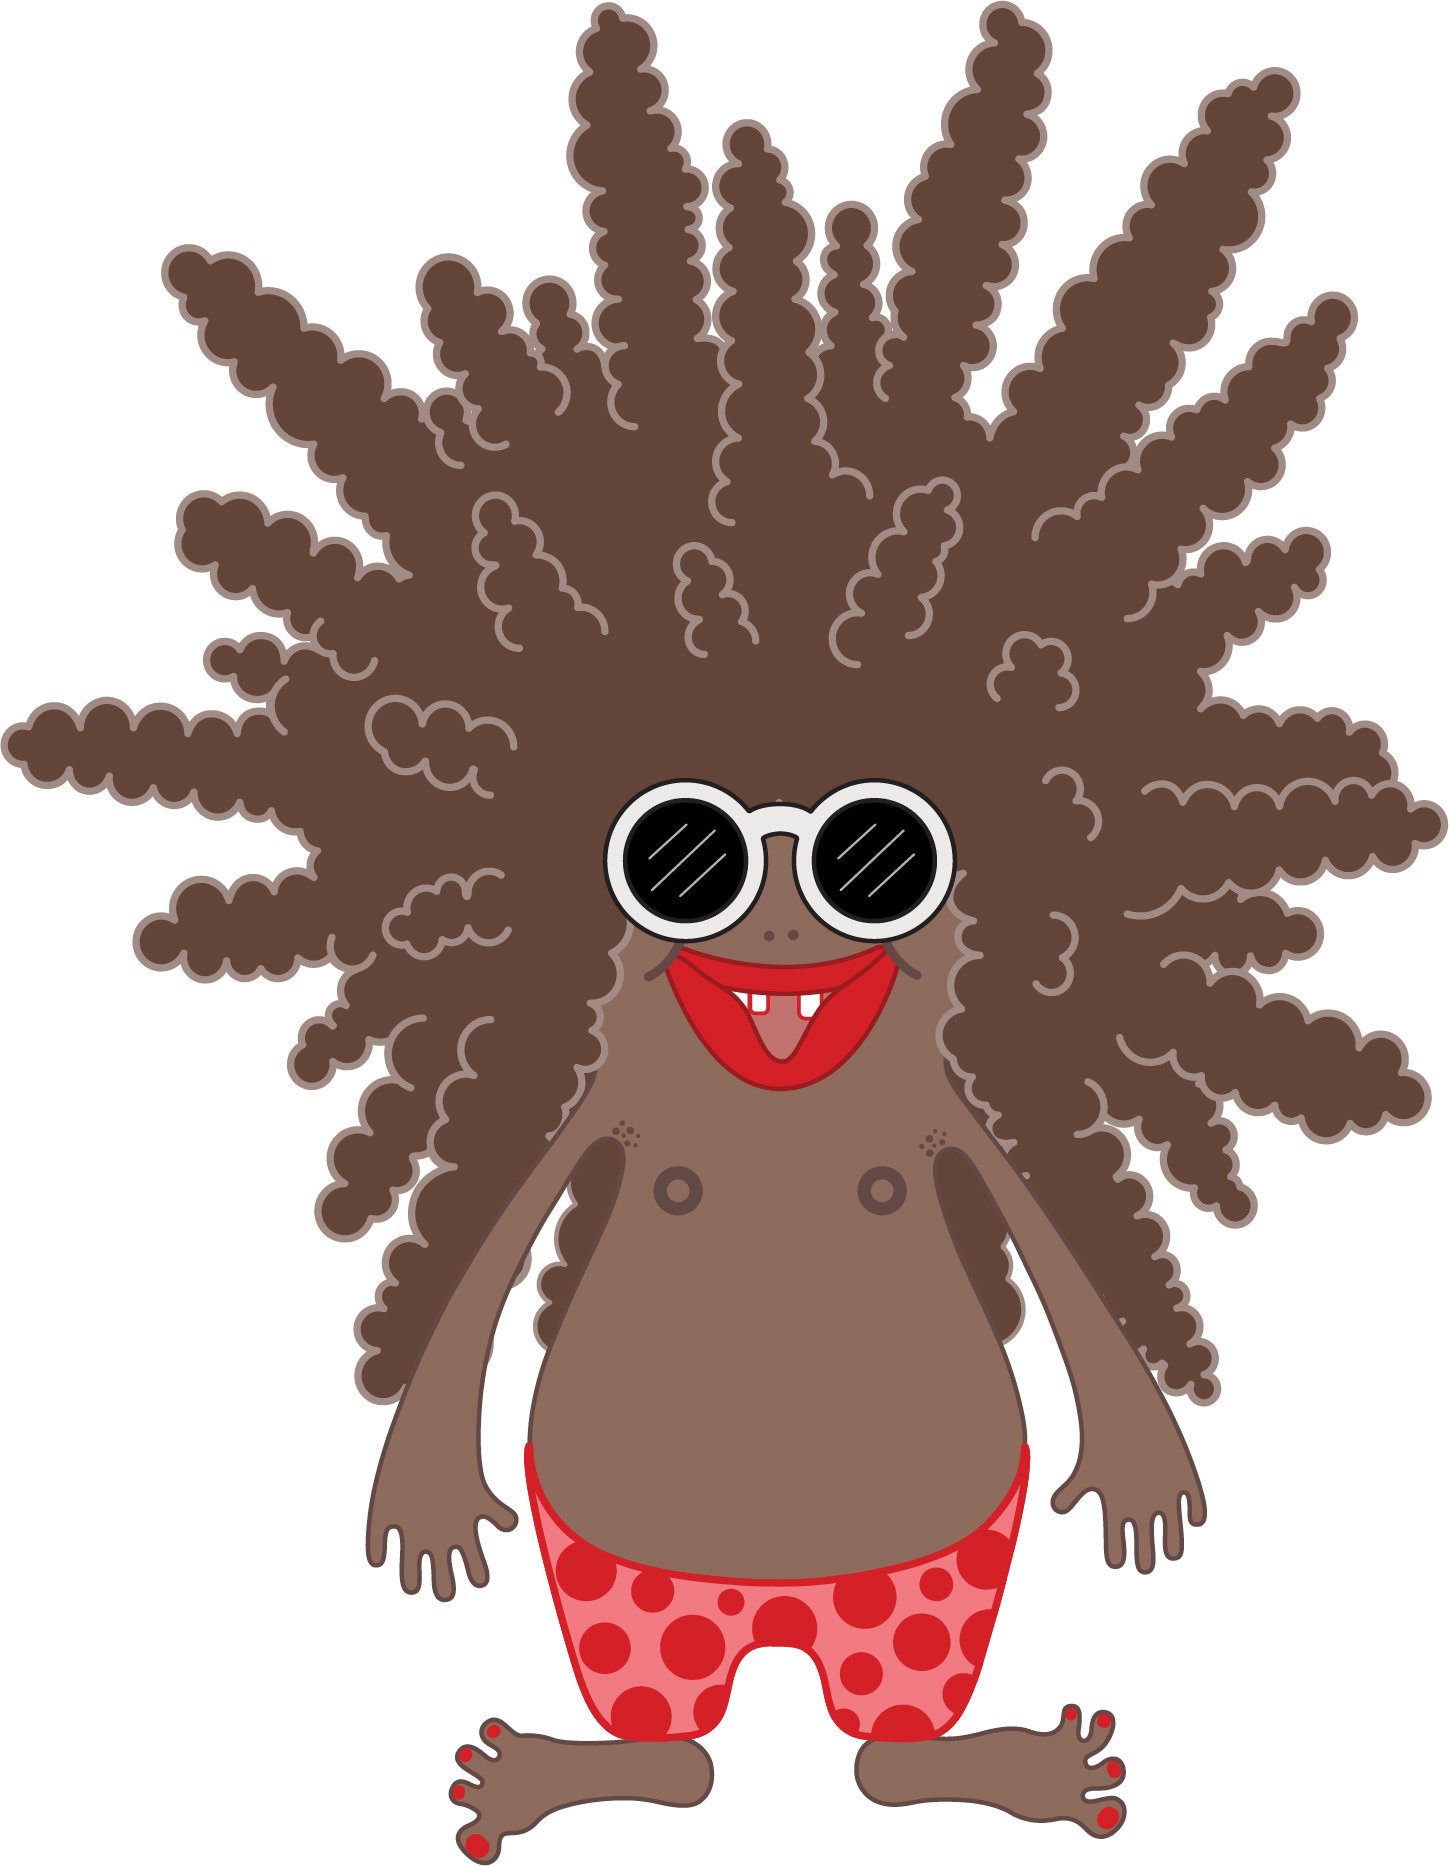 afro_character_01.jpg